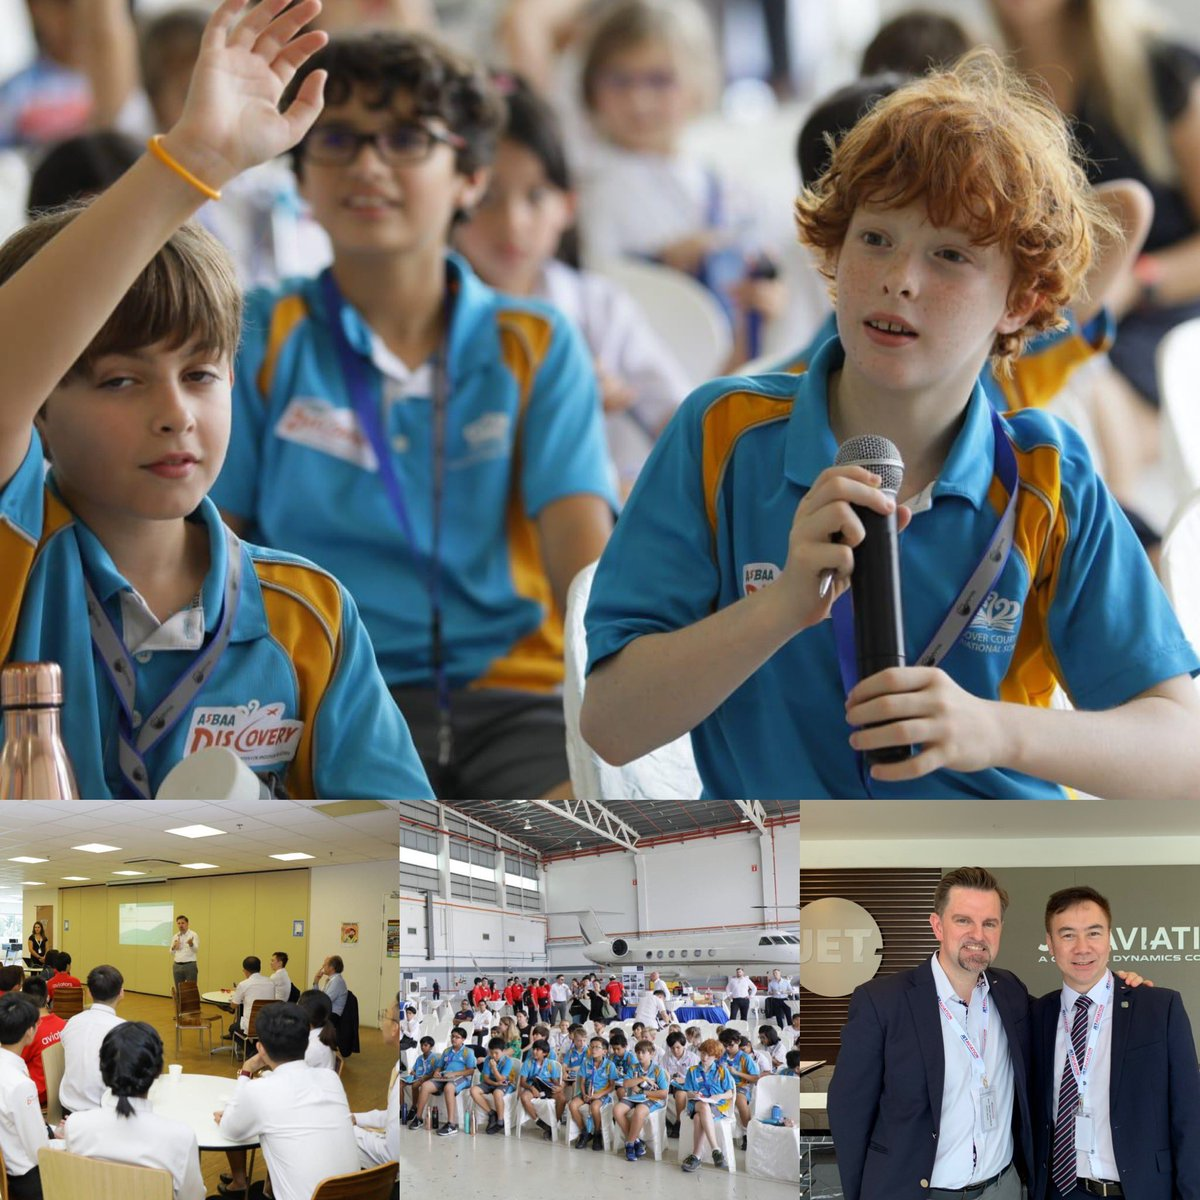 #AsBAATookOff yesterday at its inaugural event at #seletarairport hosted by @jetaviation I enjoyed sharing some of my own career experiences and providing tips. Lots of great Q's from the students and the school kids. #education #BizAvWorks @NBAA @CorpJetInvestor @SingaporeCAAS https://t.co/vVjHVzIuzM